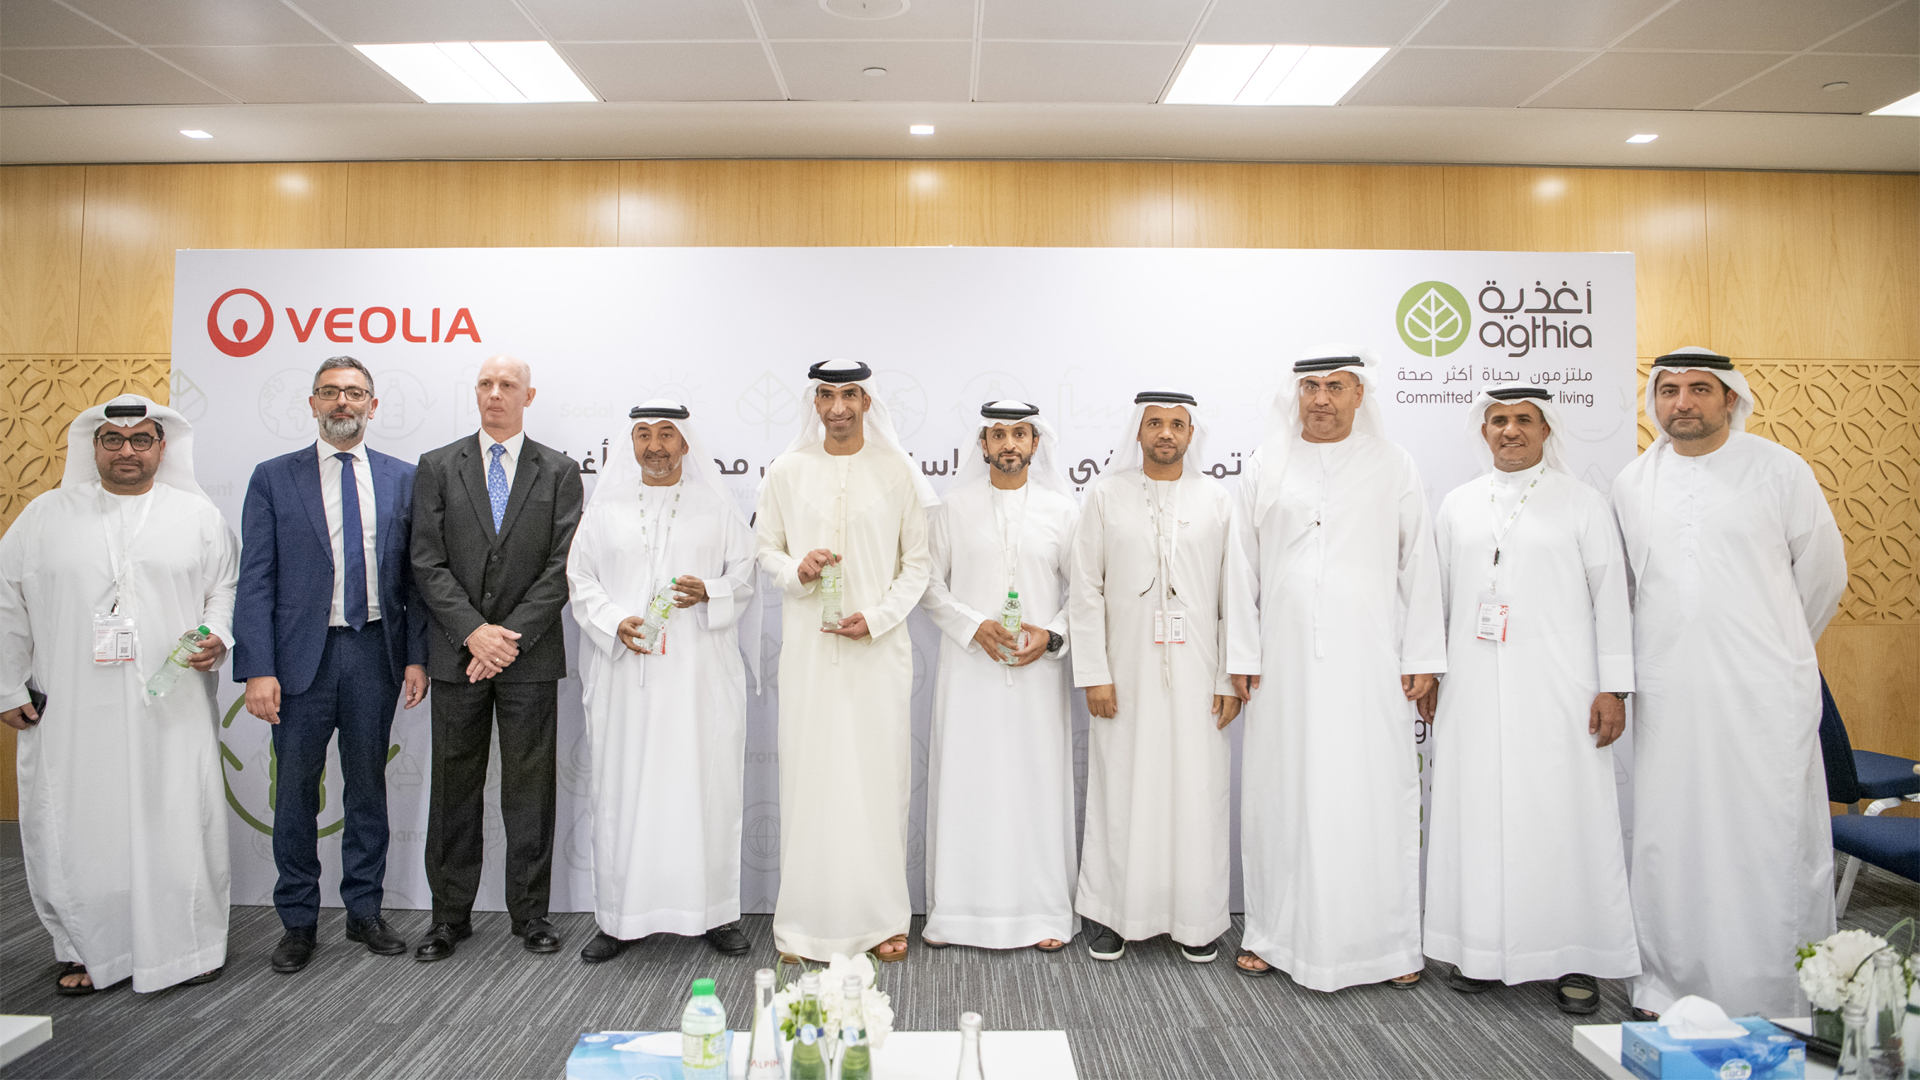 Agthia Launches Region's First Plant-Based Water Bottle and Signs Sustainability MoU with Veolia at Gulfood 2020